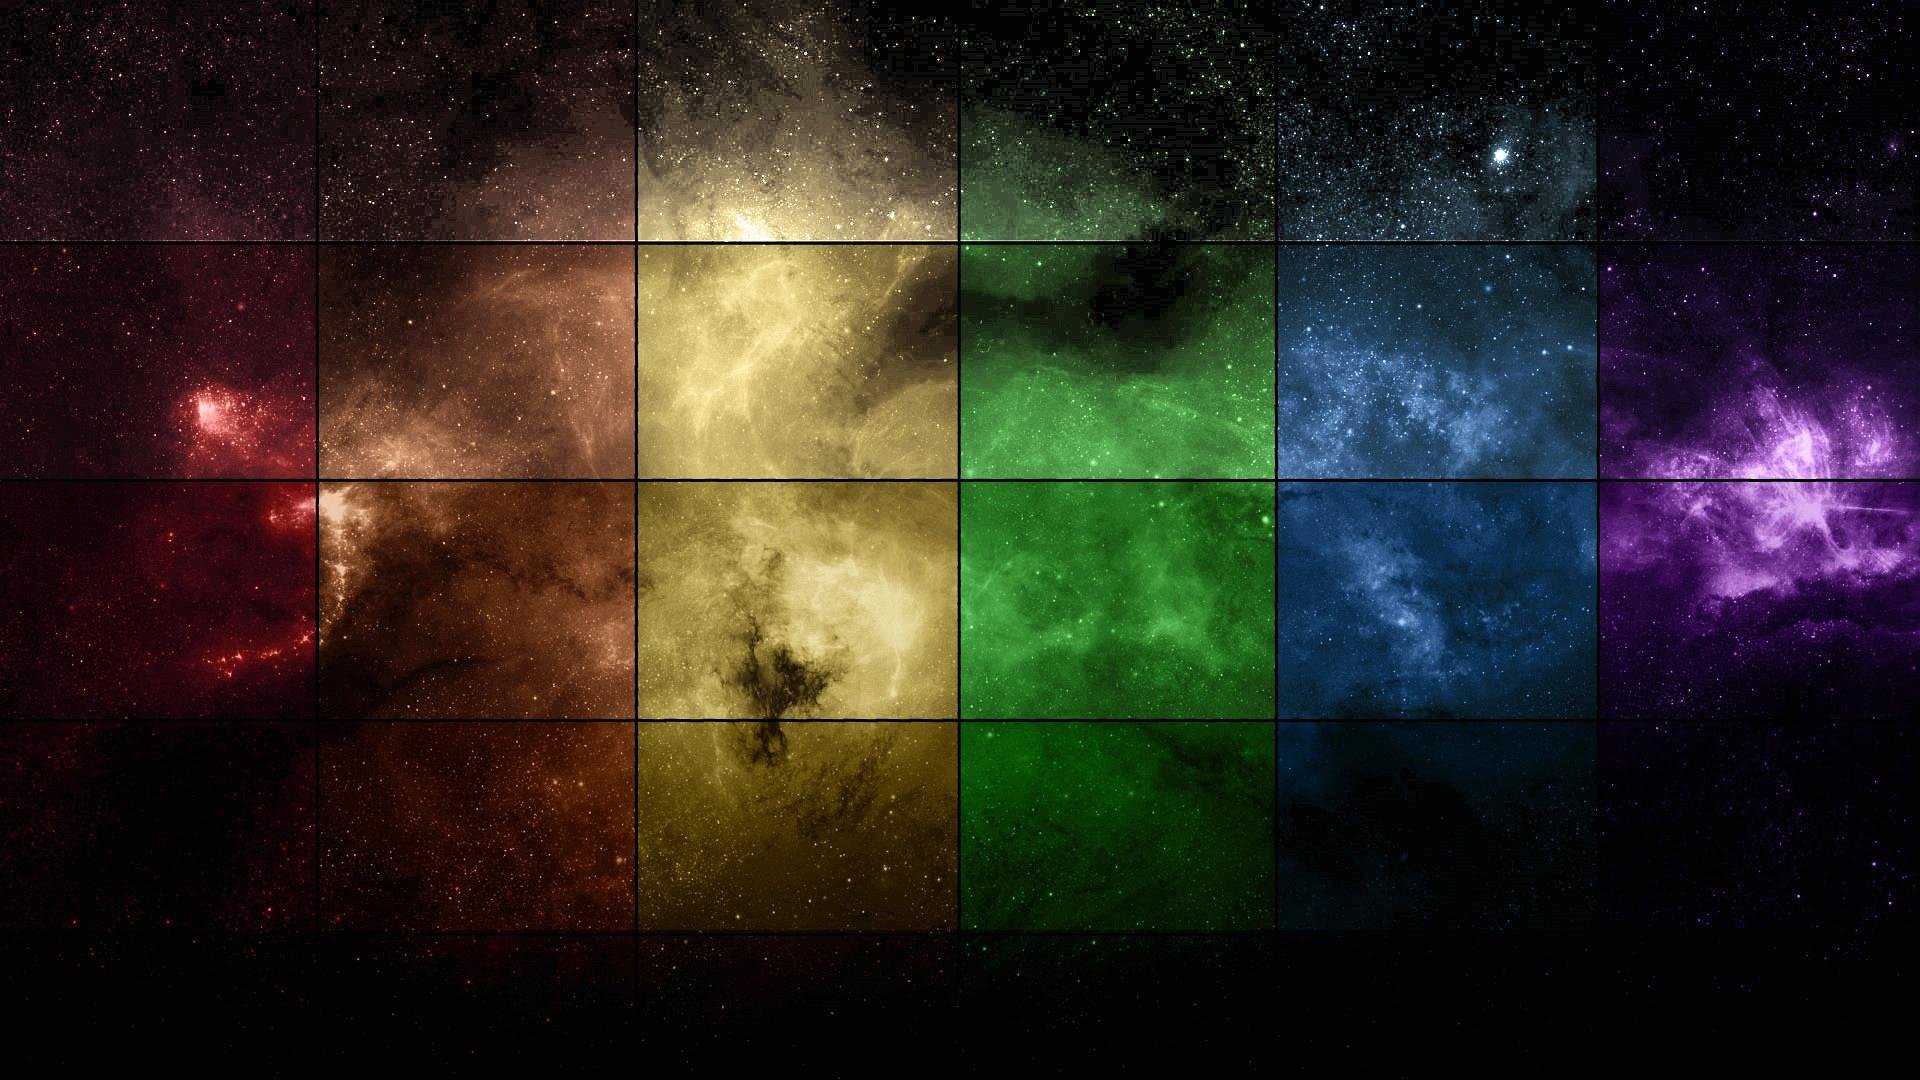 abstract space wallpapers - sf wallpaper